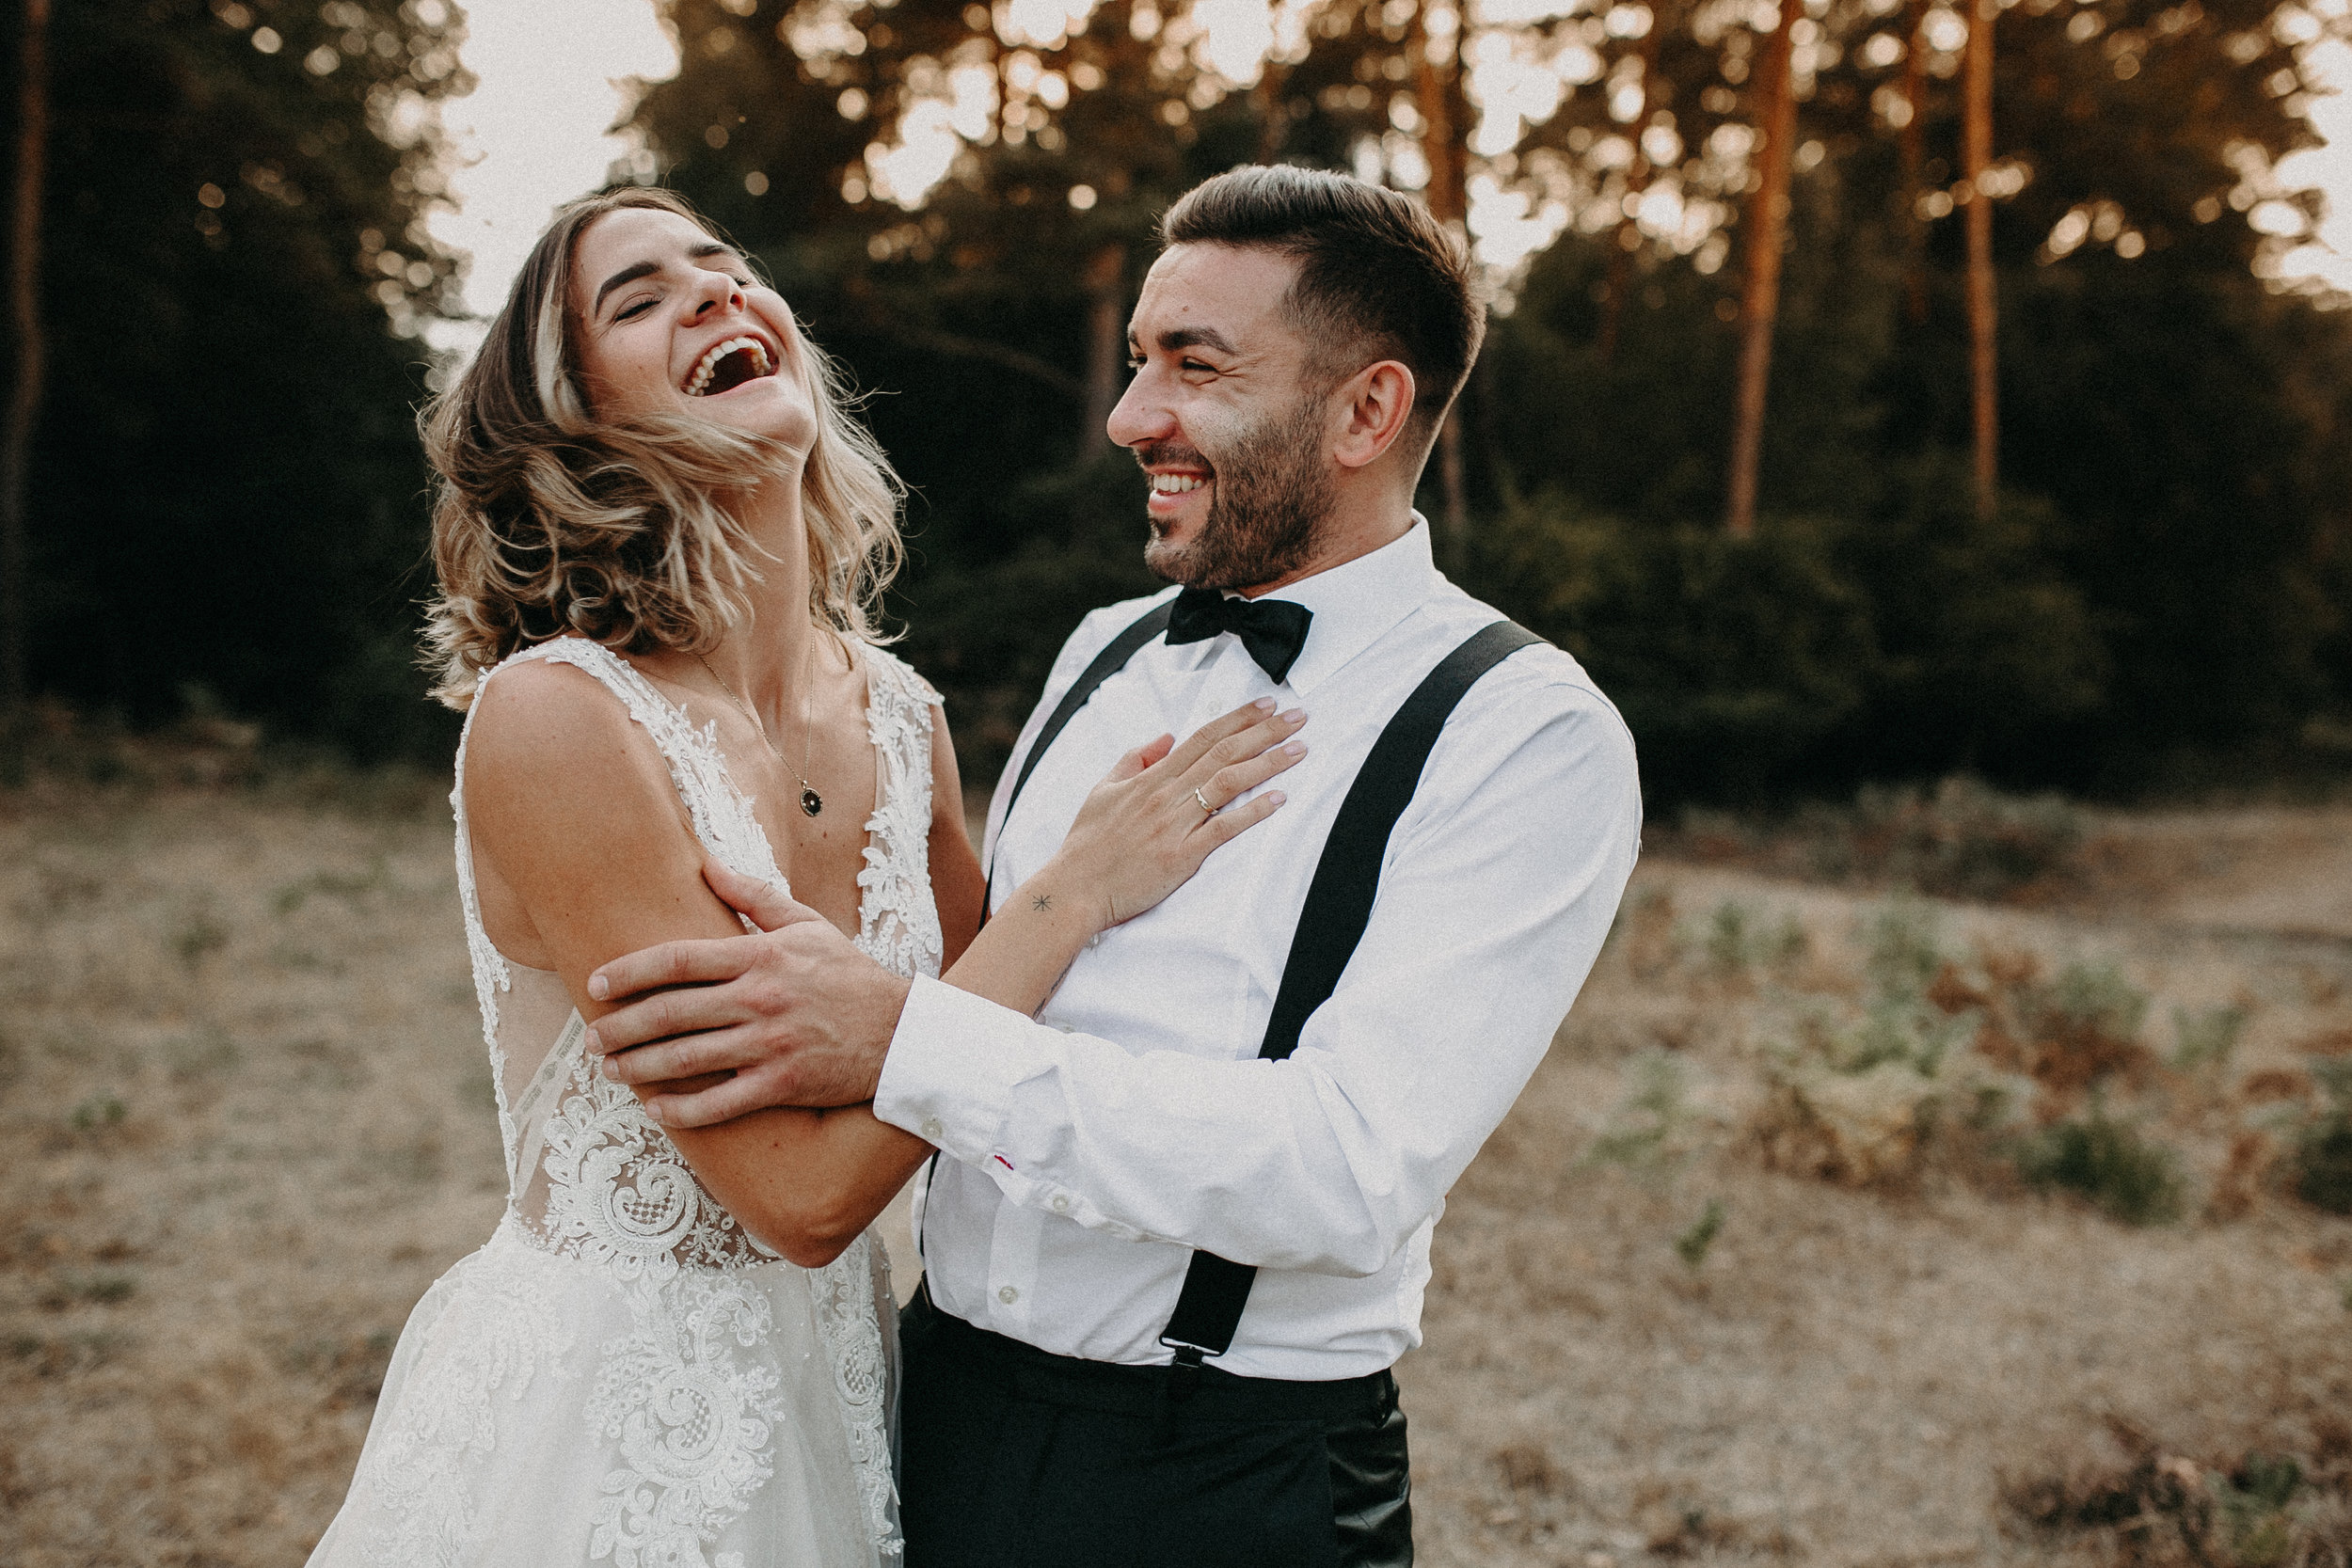 025After Wedding Jacky + Paddy August 2018.jpg